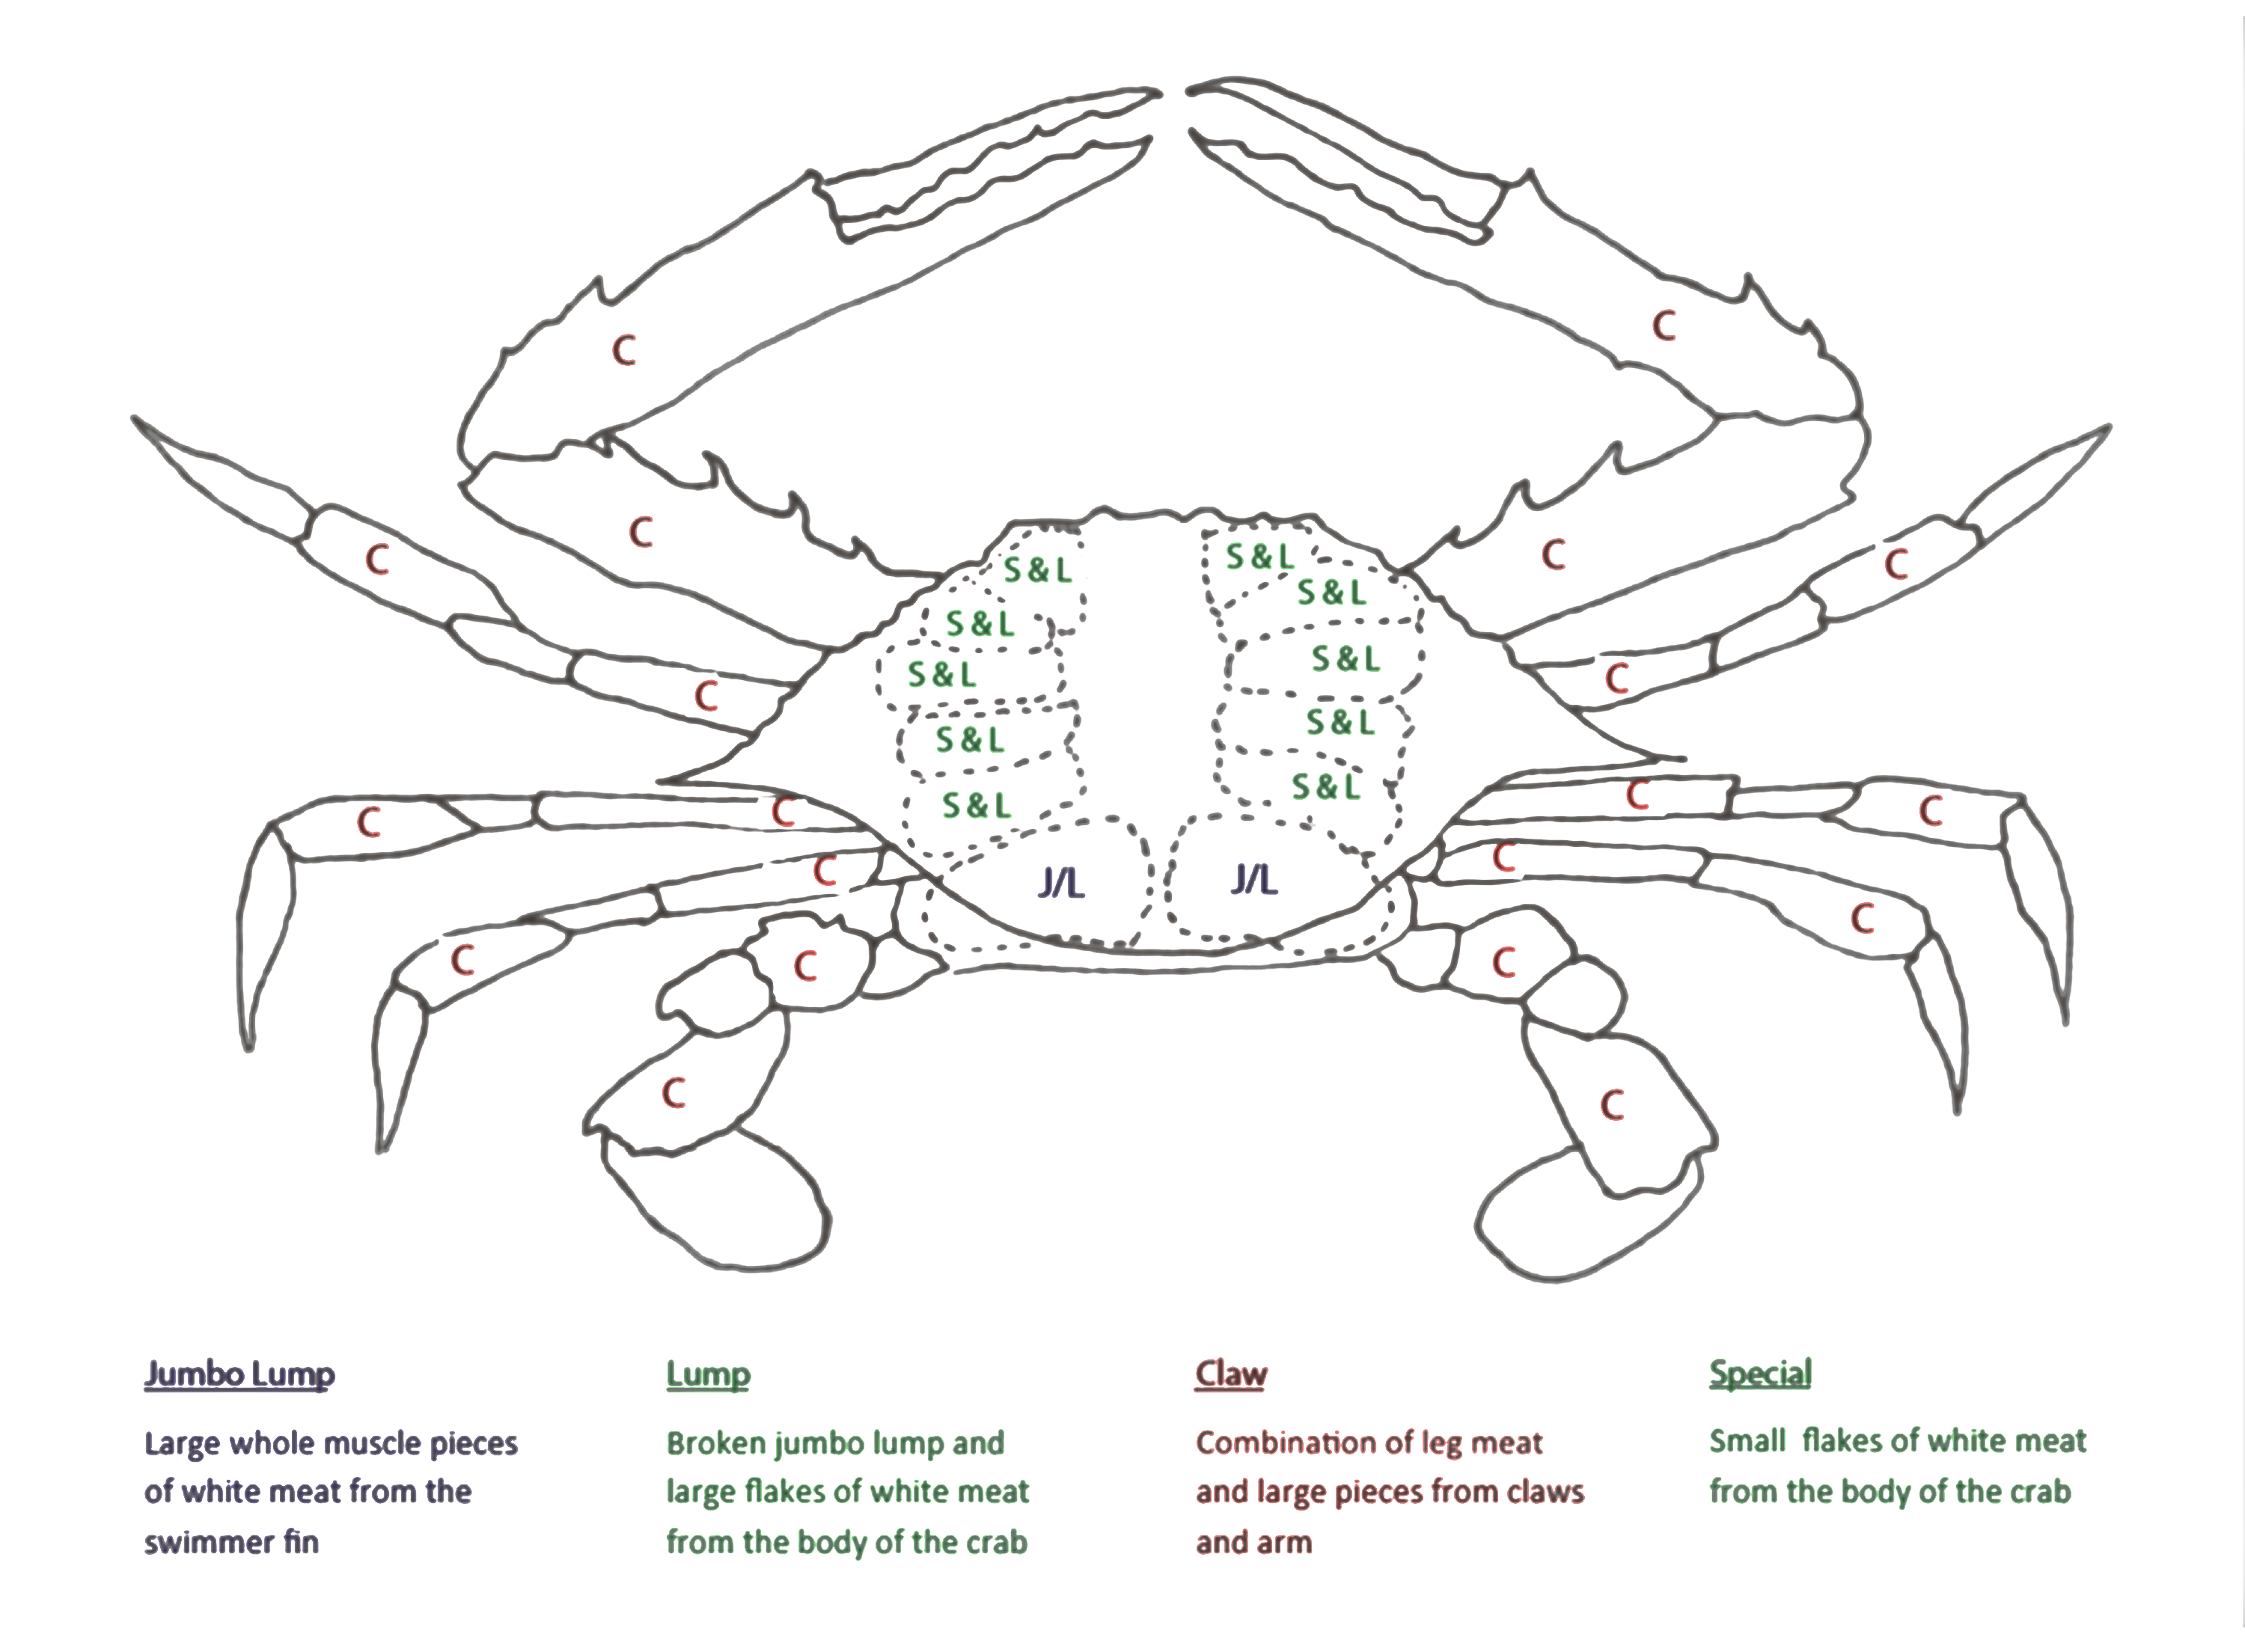 Blue Crab Drawing At Getdrawings Free For Personal Use Blue